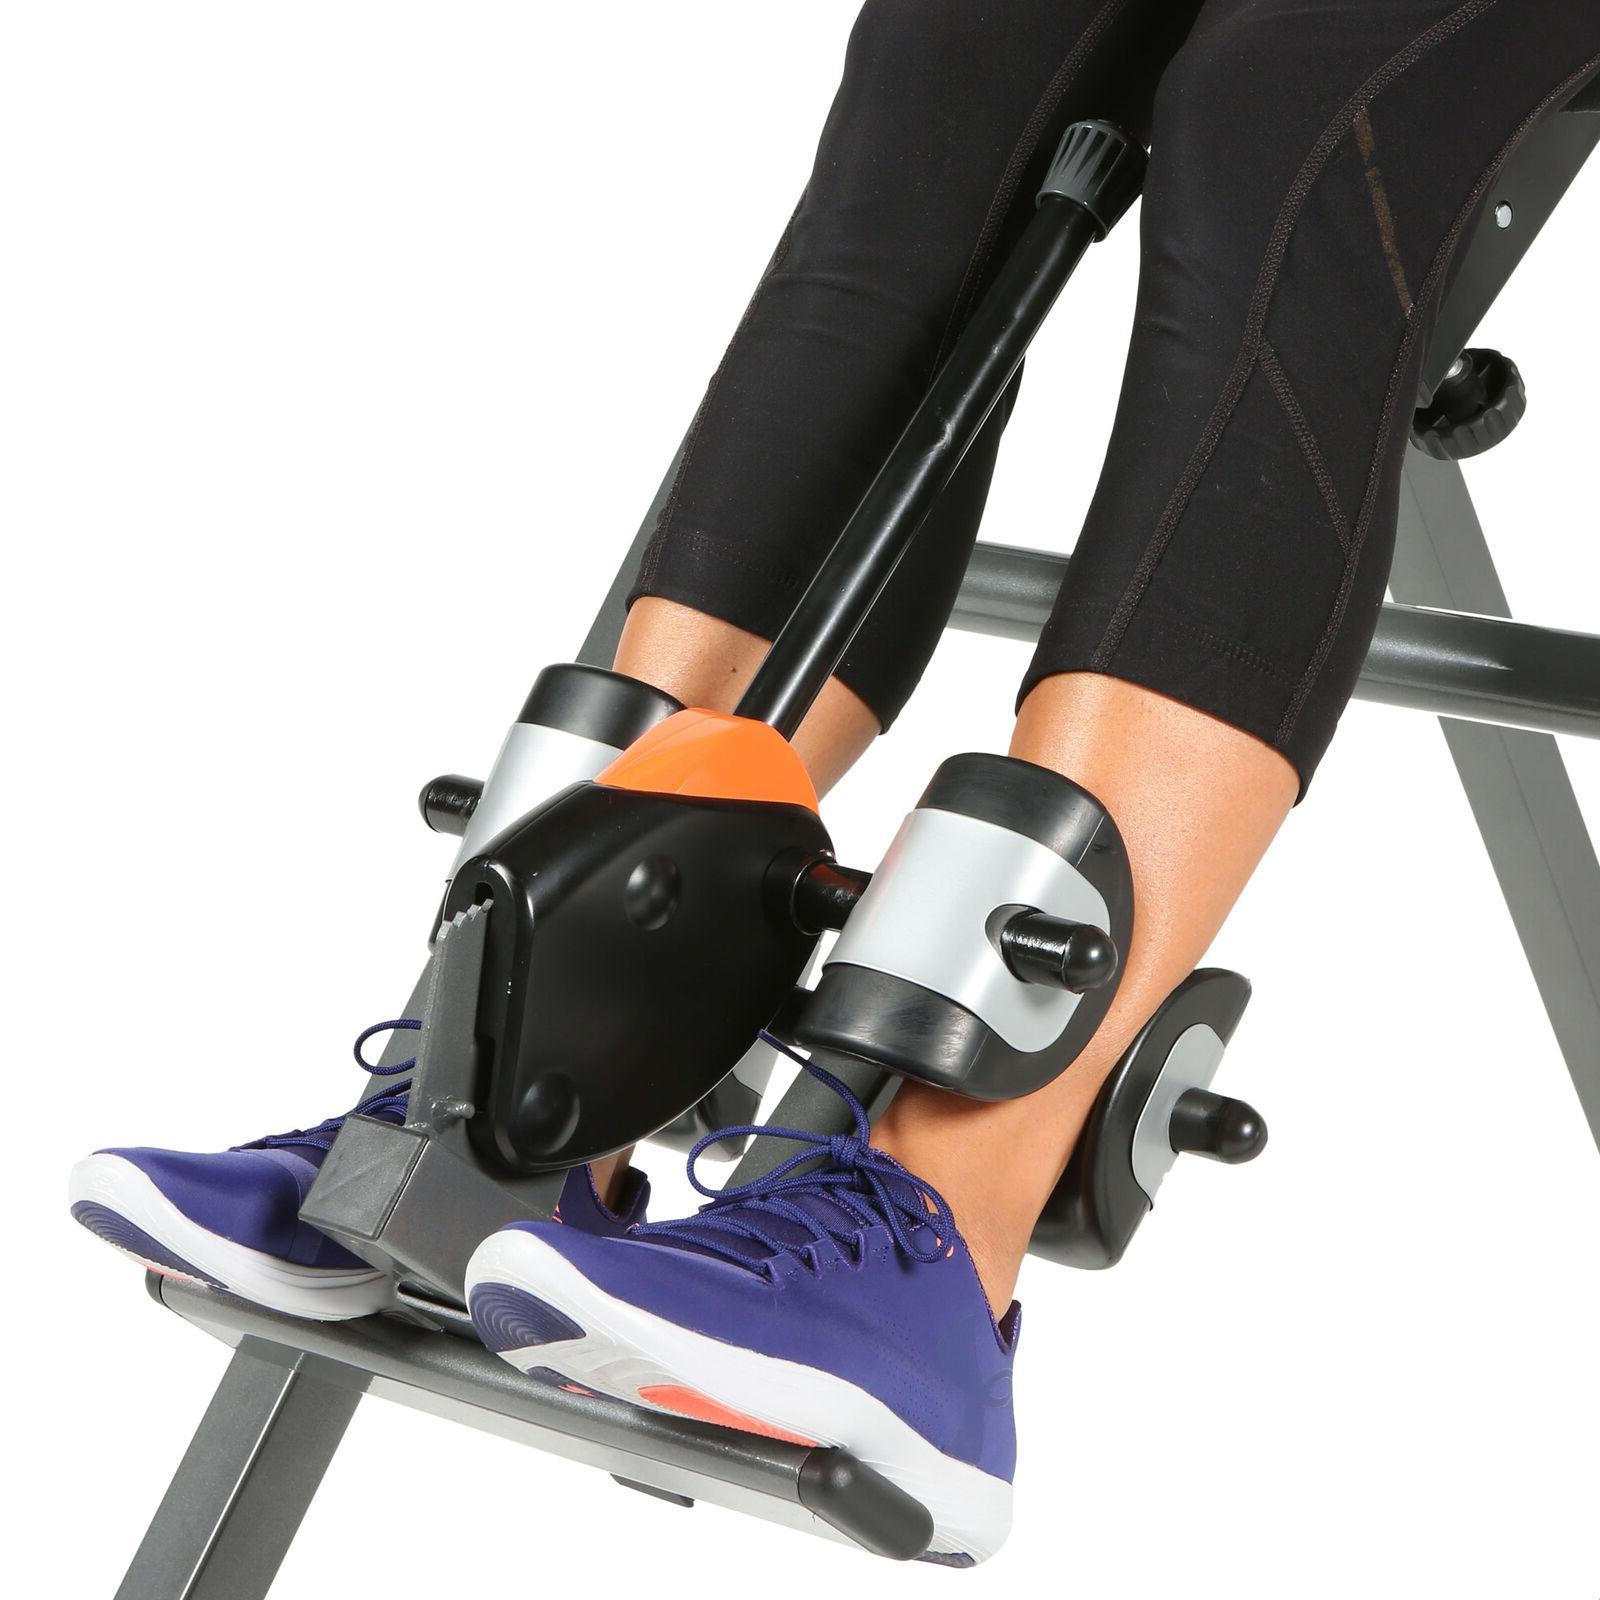 Inversion Table SURELOCK Ratchet Ankle Locking